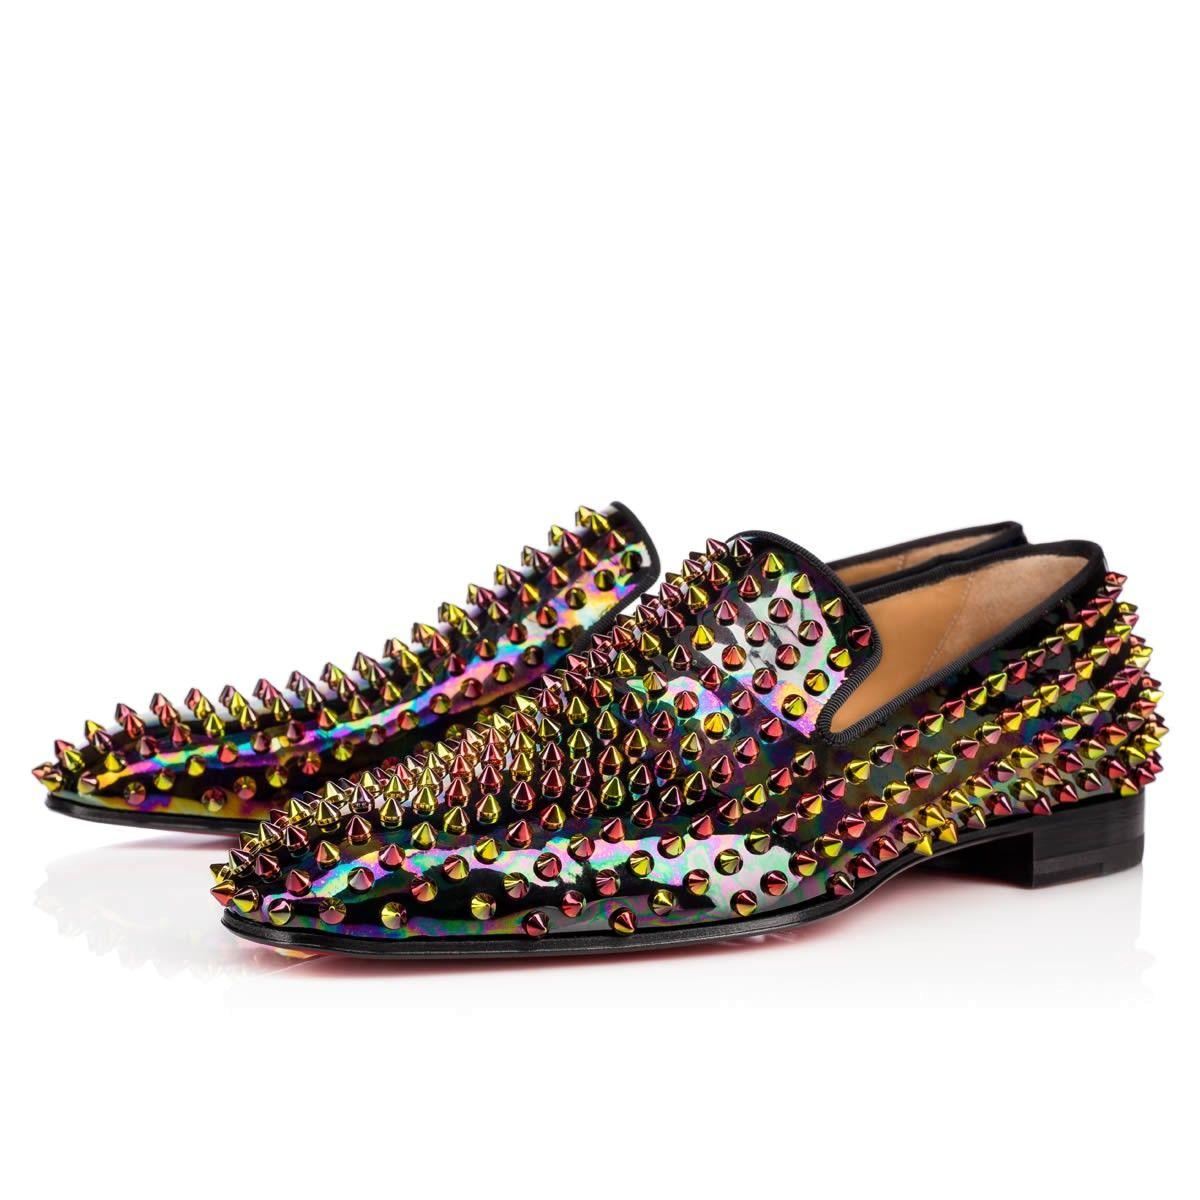 d471d533143 CHRISTIAN LOUBOUTIN Dandelion Spikes Flat Black Gold-Multi Patent Leather - Men  Shoes - Christian Louboutin.  christianlouboutin  shoes